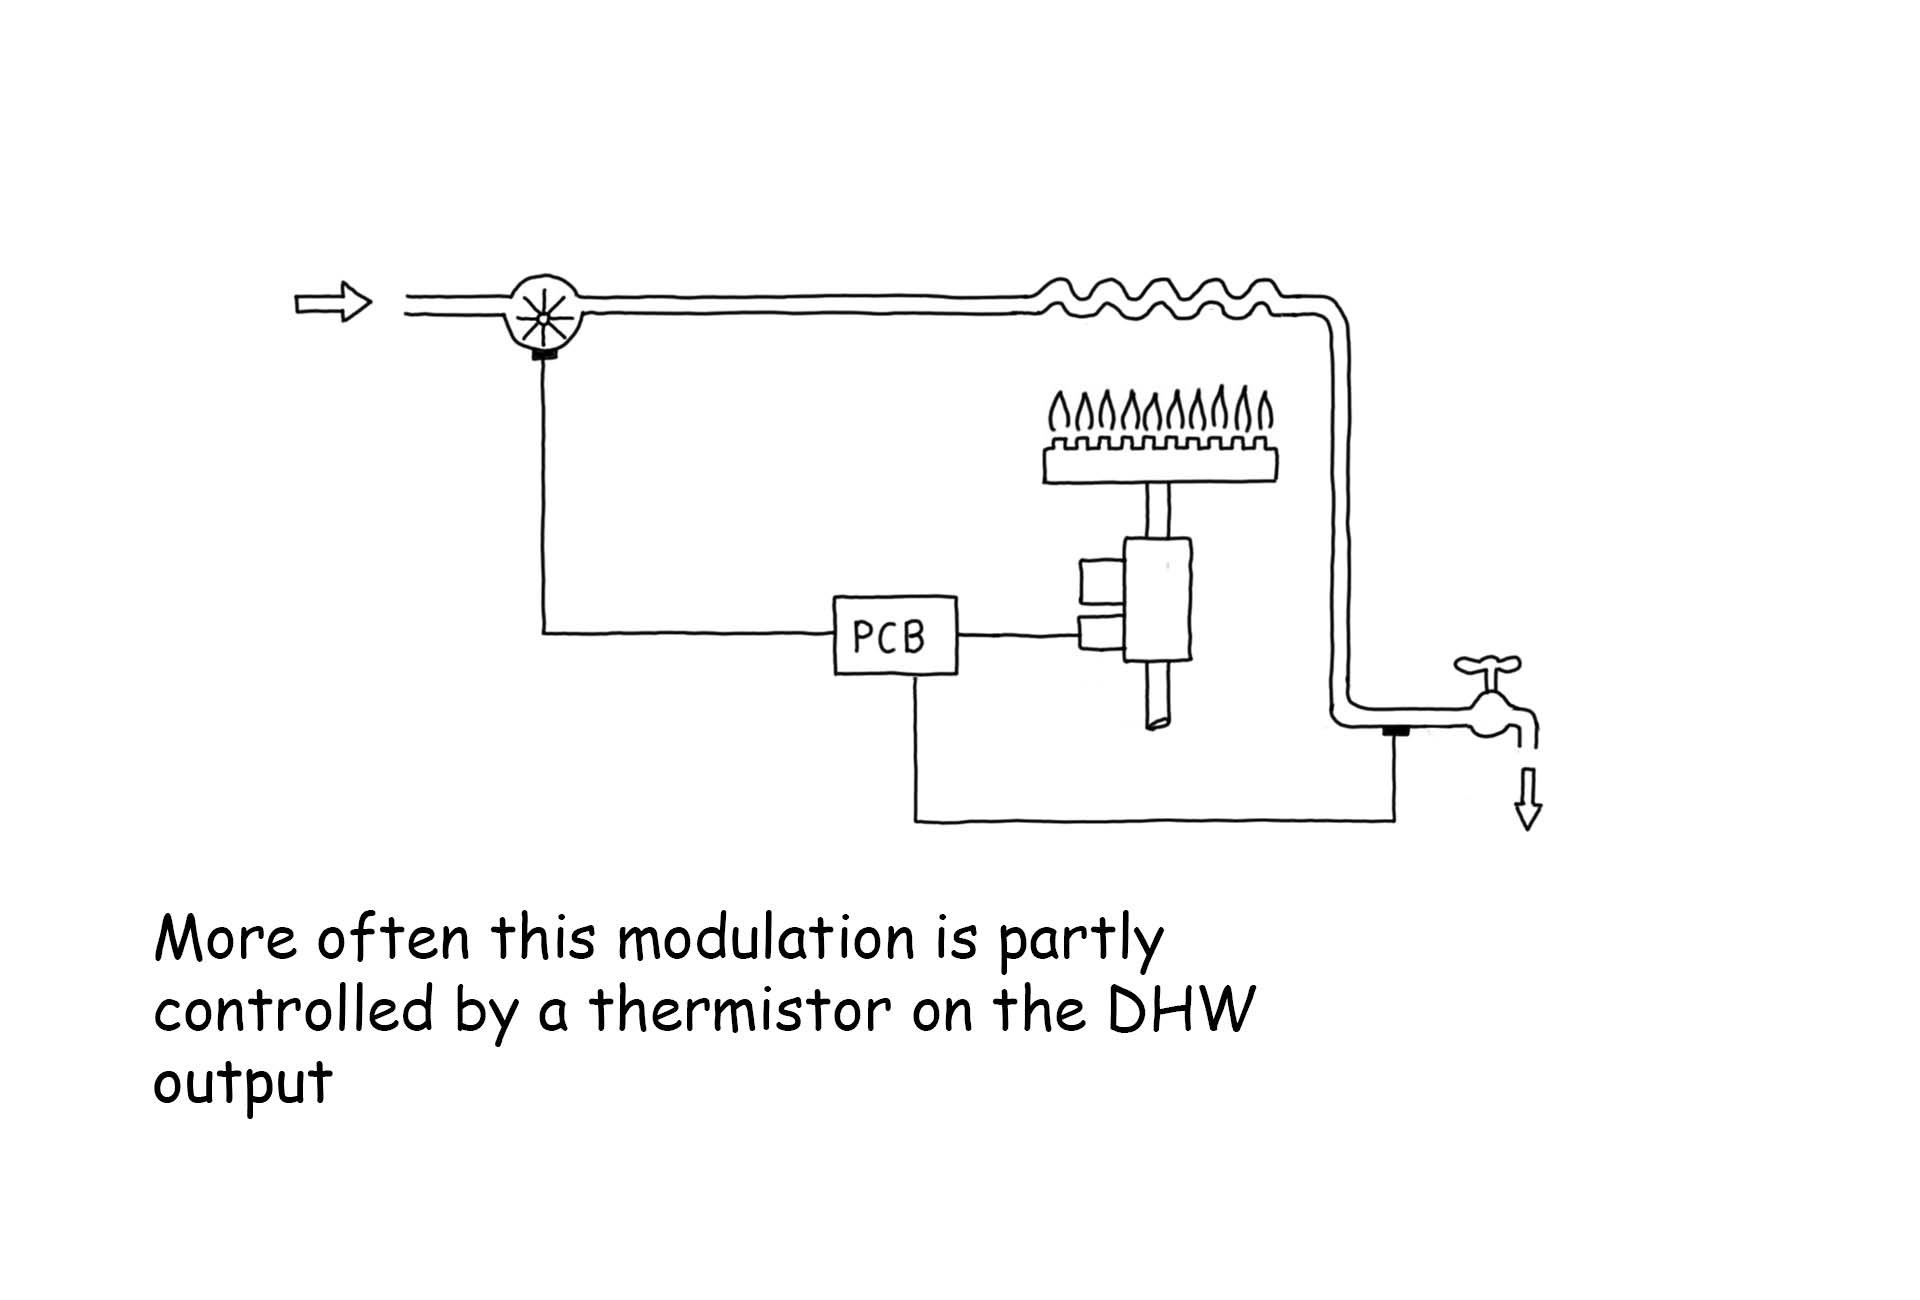 Page18 boiler blog thermistor wiring diagram at readyjetset.co